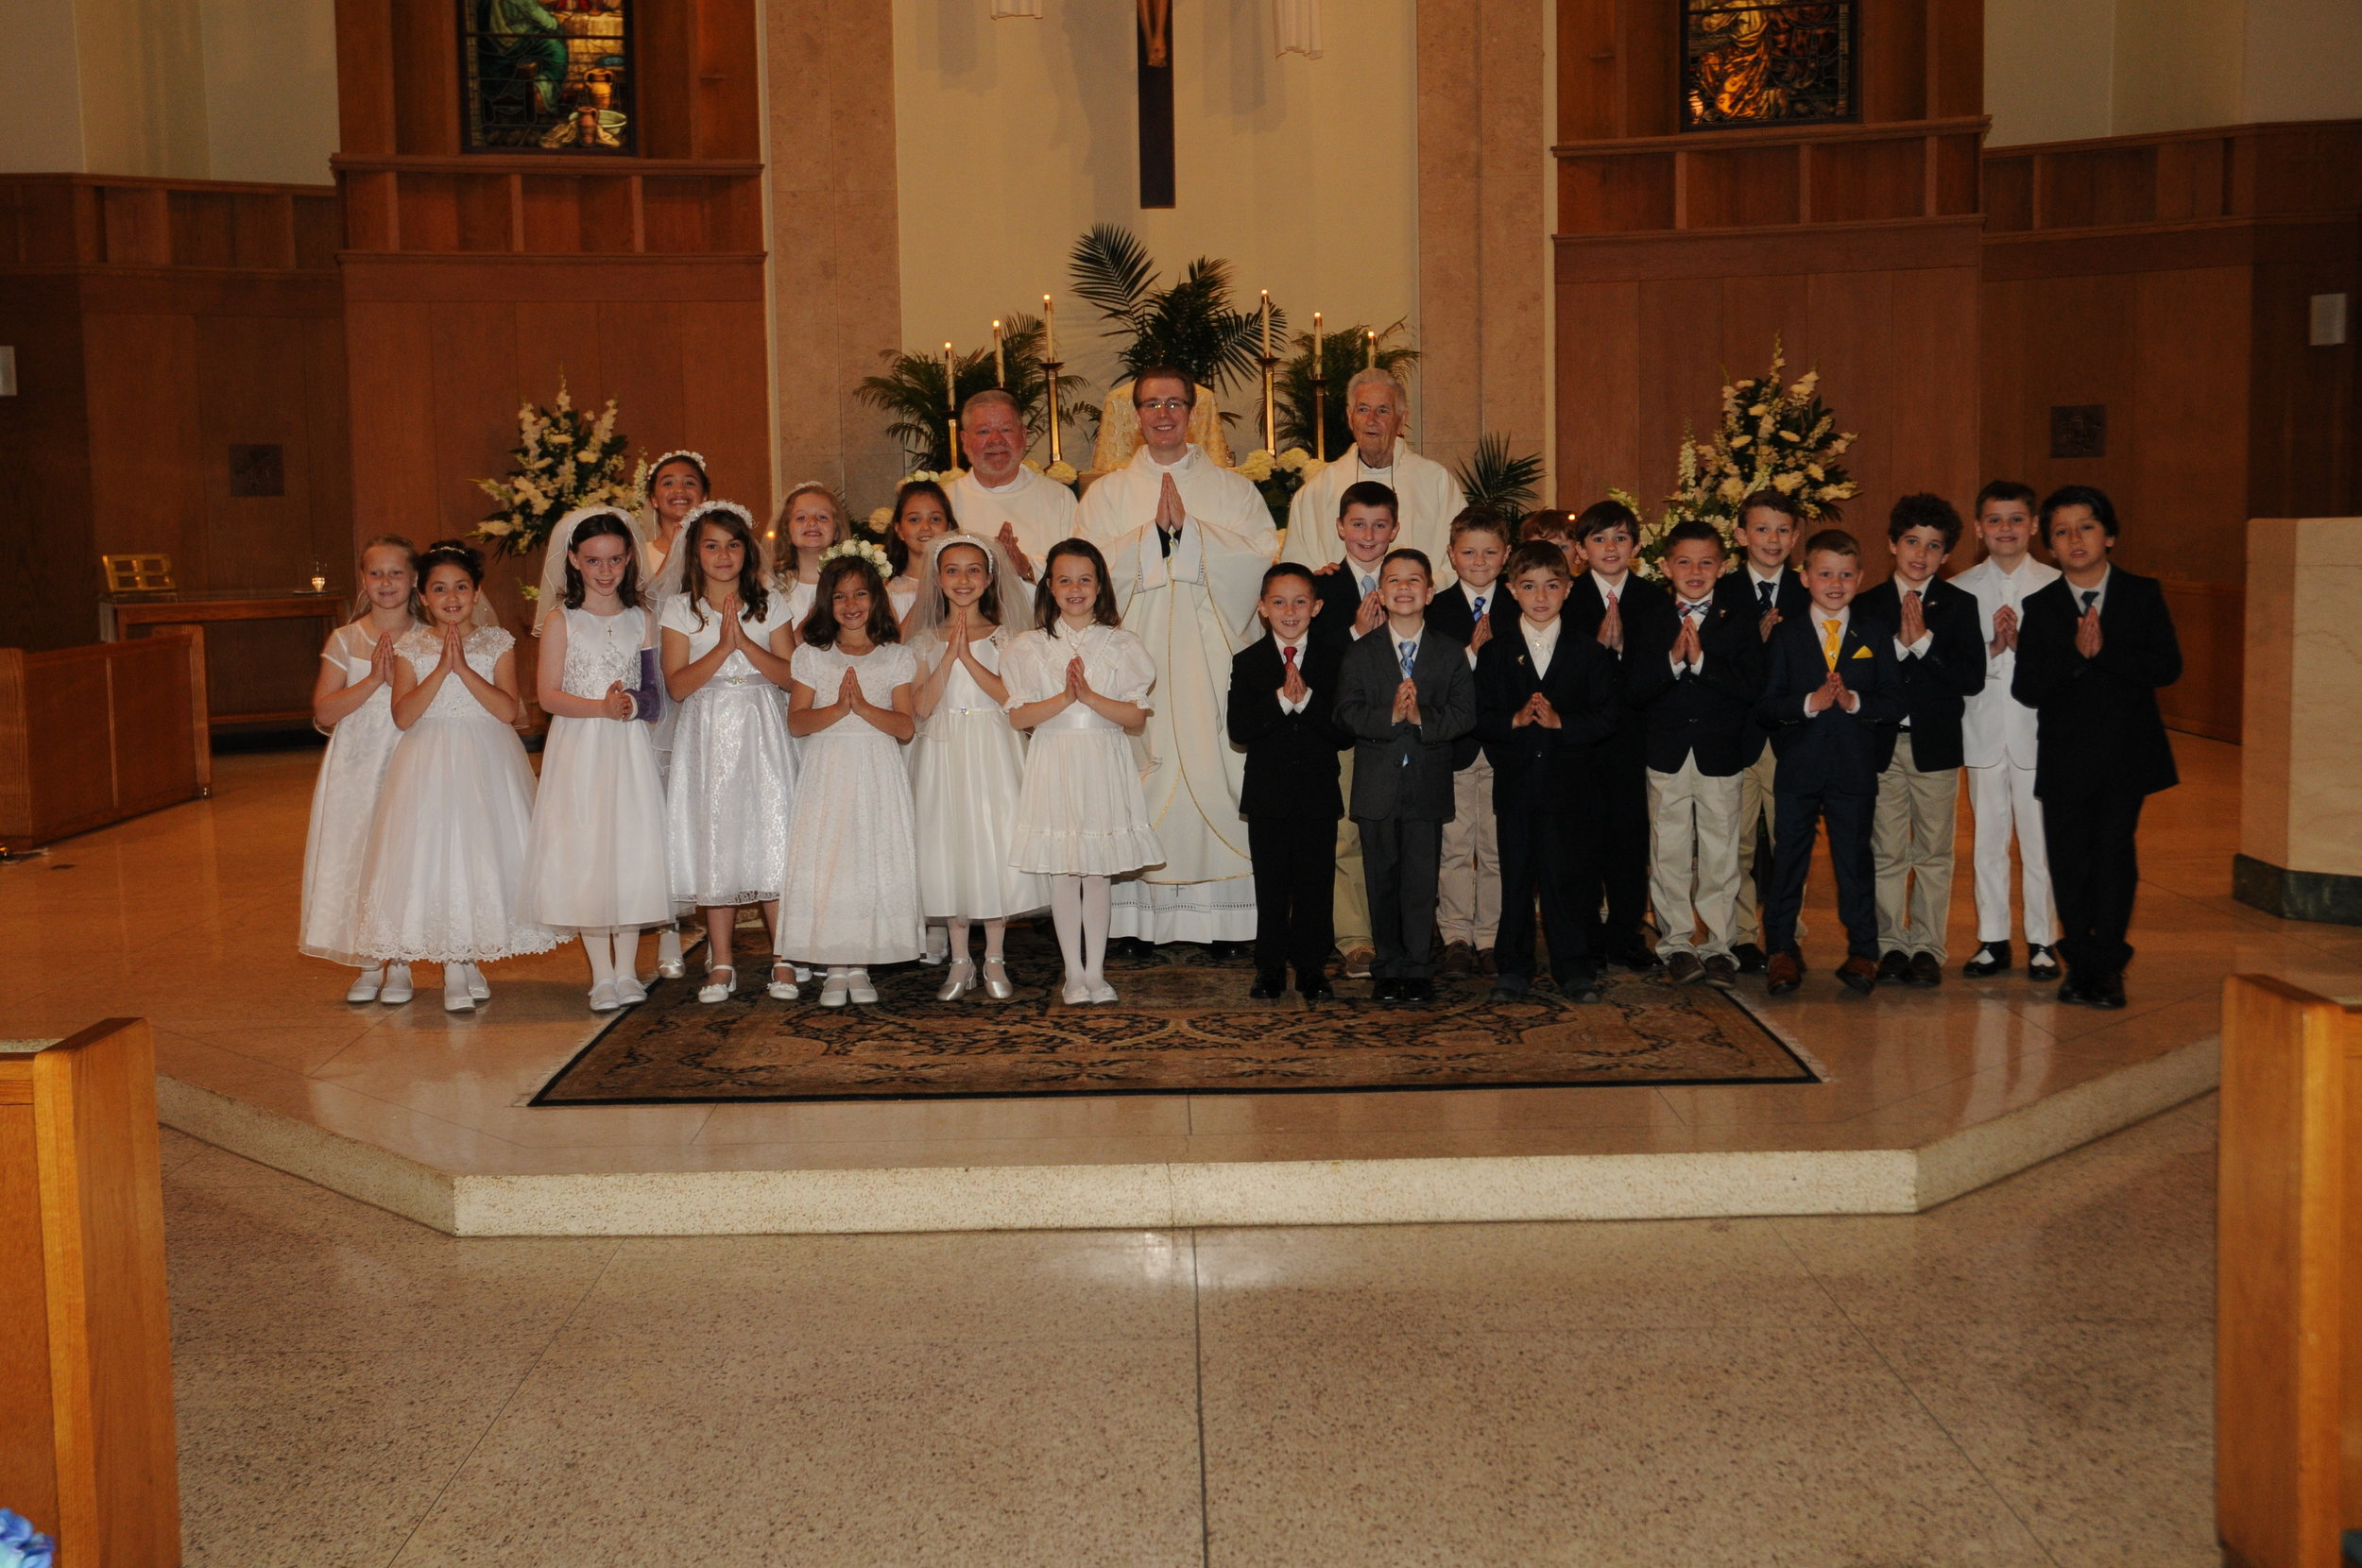 The Our Lady of Mercy School First Communion Class with Fr. Barrow, Associate Pastor of OLM, Fr. John Gray, Senior Priest of Providence and Deacon John Dowd, OLM Deacon on May 12, 2018.